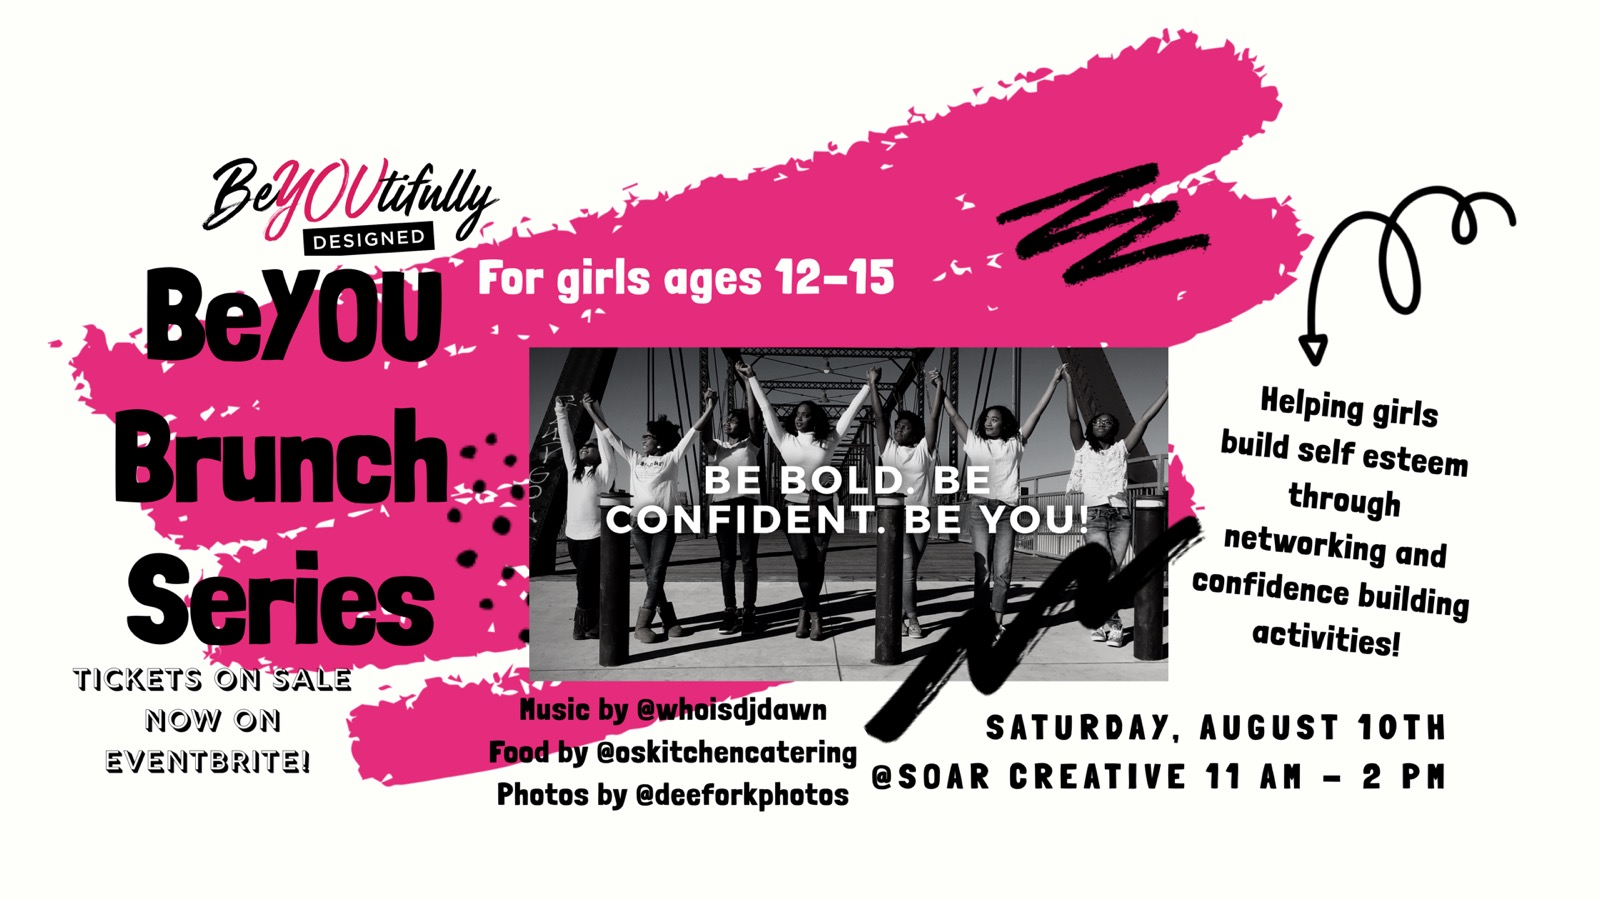 """- Join us for an amazing experience where participants will have the opportunity to take part in a variety of self-enhancing activities such as goal setting, vision boarding, and networking with other like-minded girls throughout this city. Participants will also hear from a number of women entrepreneurs and leaders while enjoying delicious brunch bites prepared by O's Kitchen Catering, sounds by DJ Dawn, and photos by Danielle Fork.Our corporate sponsors include Designed Essentials, Taliah Waajid, Samsung, Elite Wellness and Nappy and Happy. You don't want to miss this event!! Tickets are limited. For more information about BeYOUtifully Designed visit www.beyoutifullydesigned.org. To learn more about vendor, sponsorship, or volunteer opportunities, email hello@beyoutifullydesigned.org.*To register for the event search for """"BeYOUtifully Designed BeYOU Brunch"""" on Event Brite."""